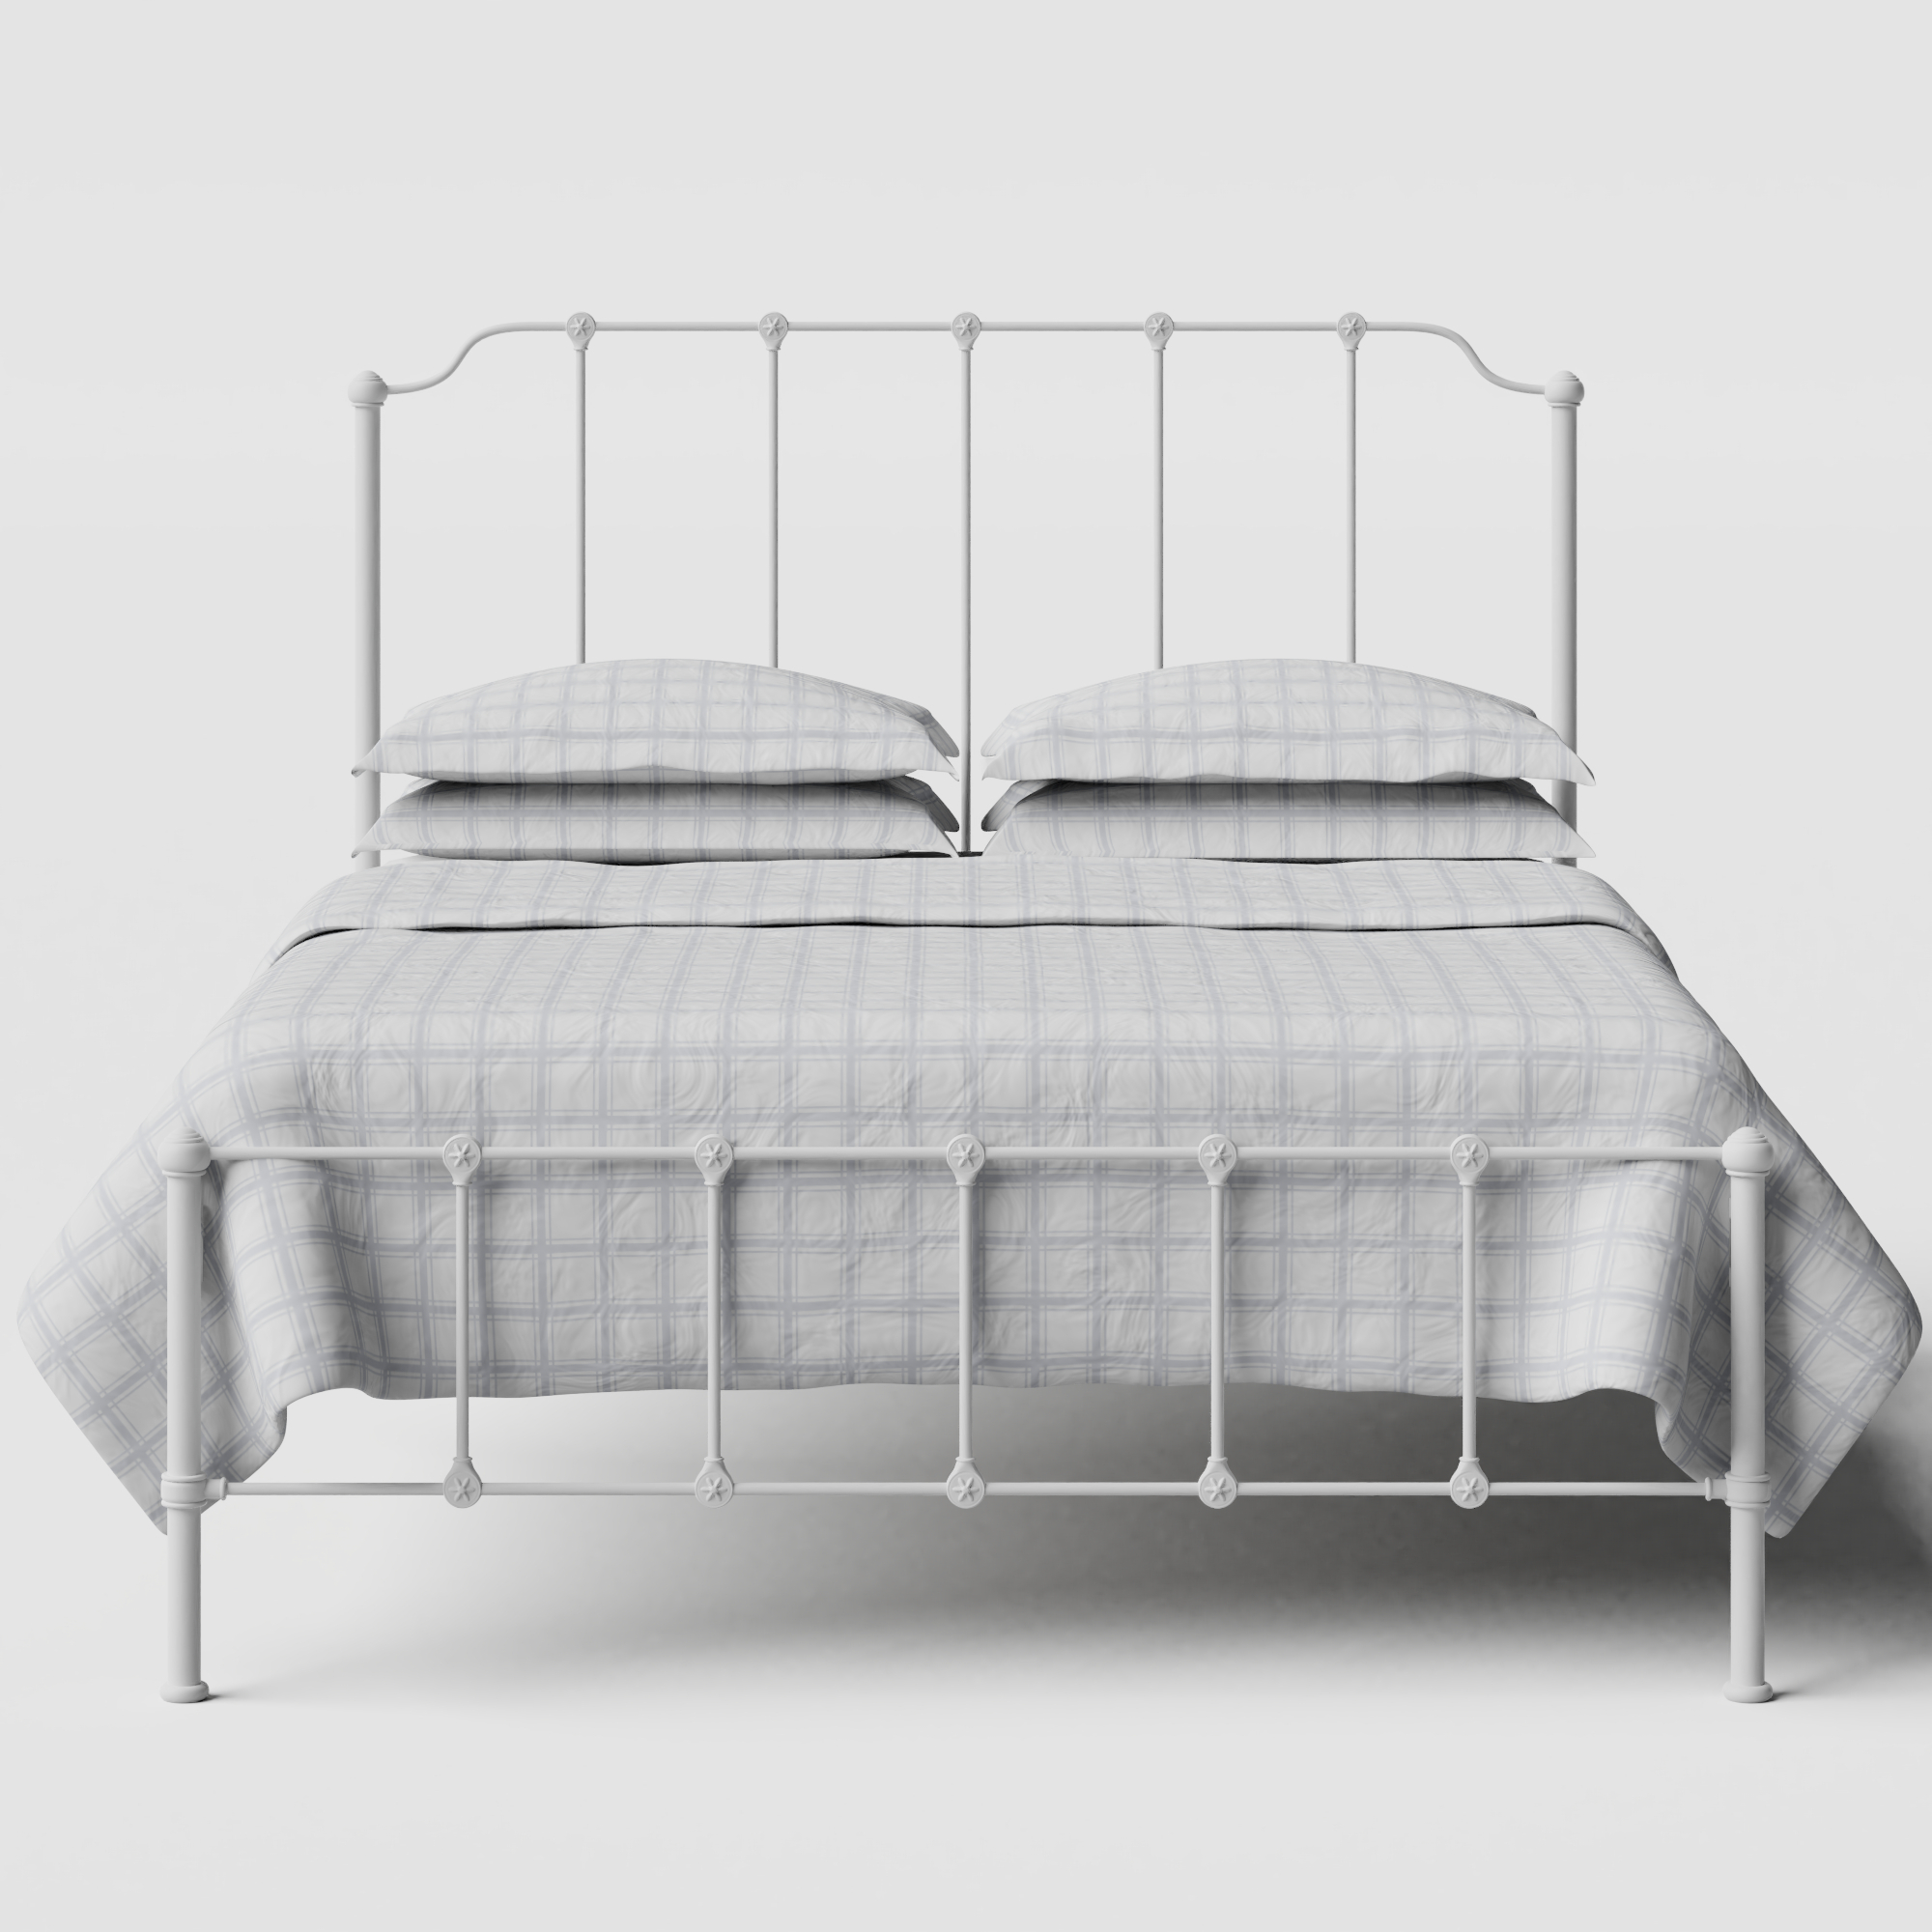 Julia iron/metal bed in white